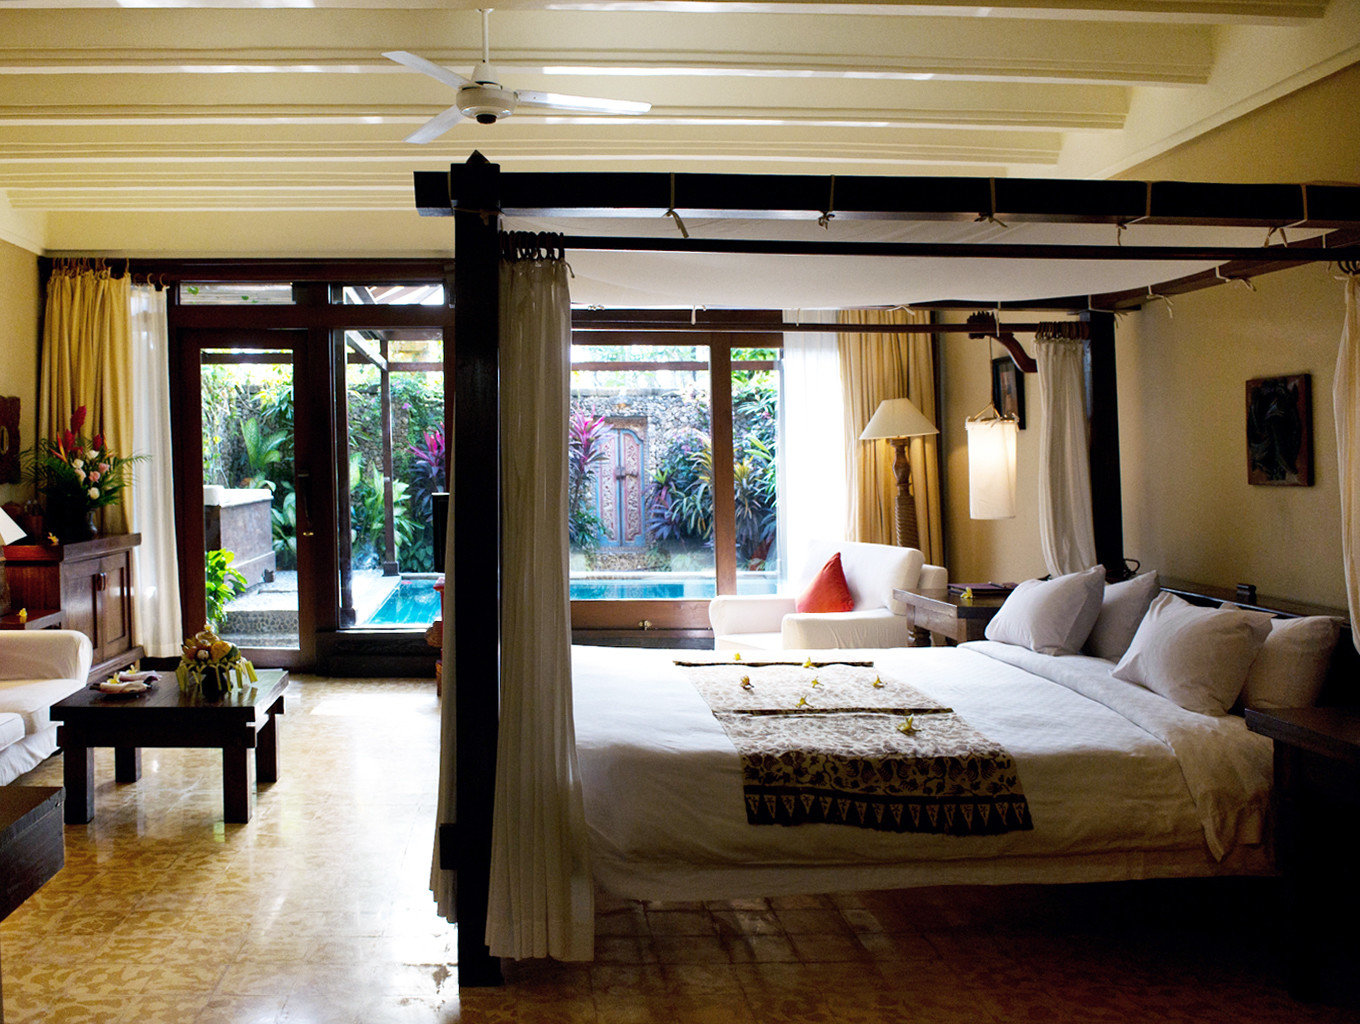 Bedroom Elegant Pool Rustic Scenic views Tropical property living room home Suite condominium Villa Resort cottage mansion